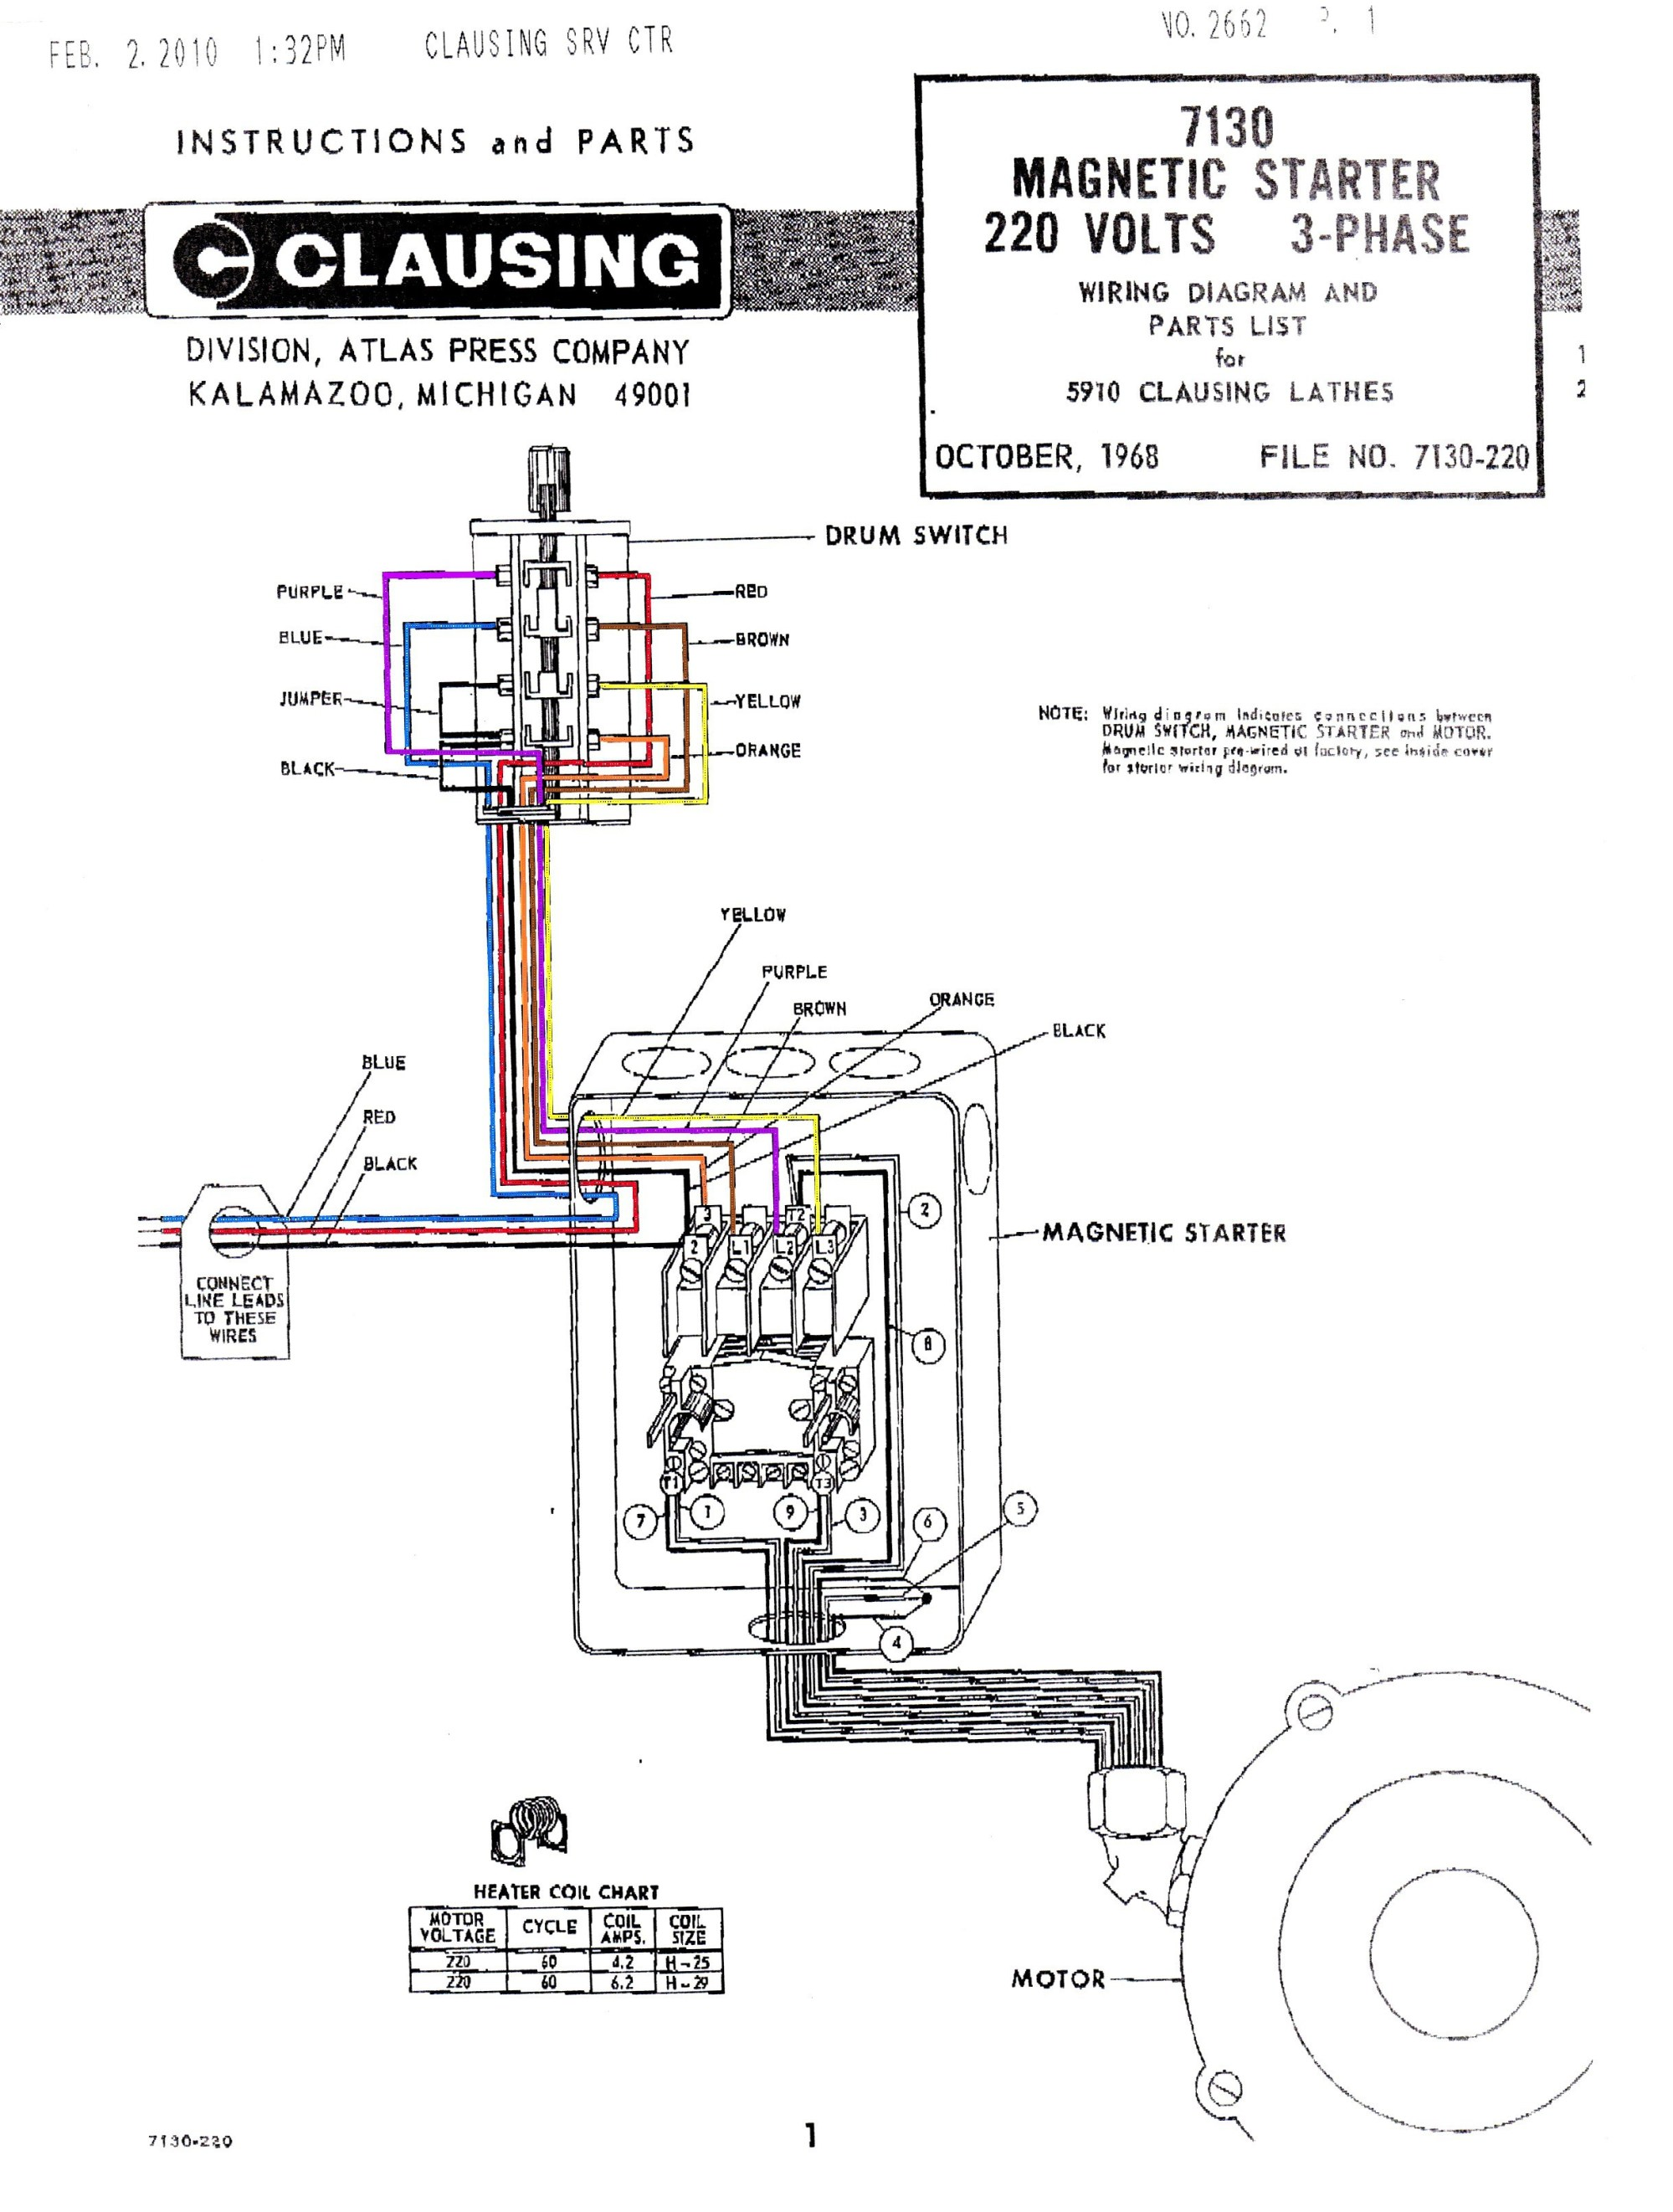 hight resolution of duplex motor starter wiring diagram wiring diagram toolbox manual motor starter switch wiring diagram